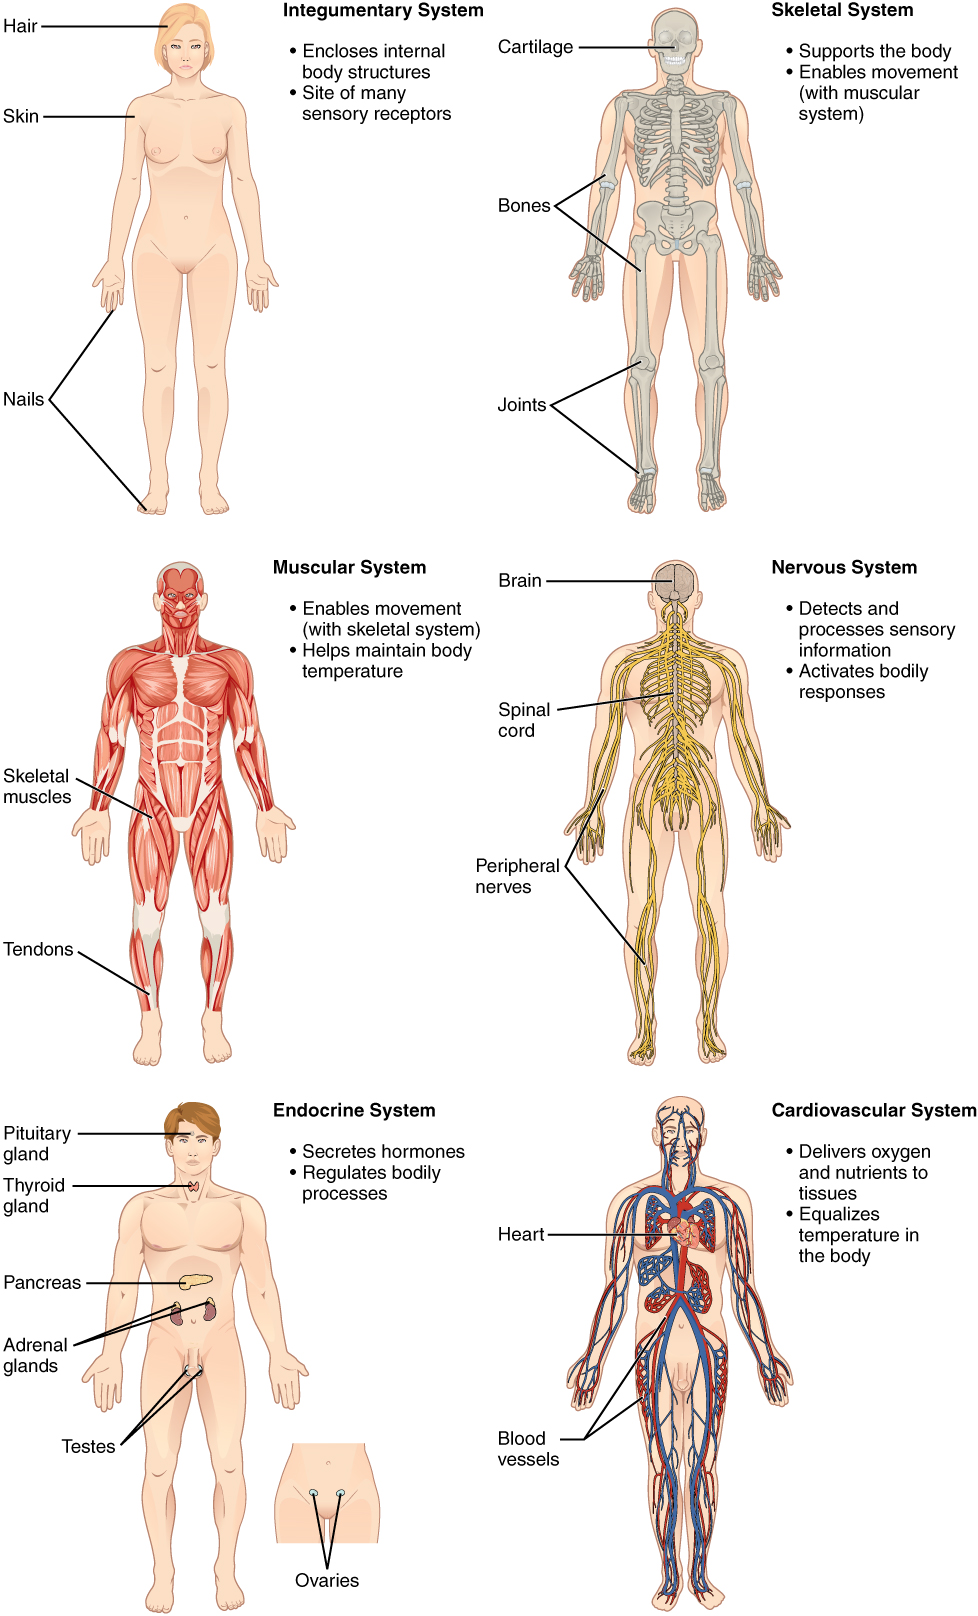 1.2 Structural Organization of the Human Body – Anatomy and Physiology